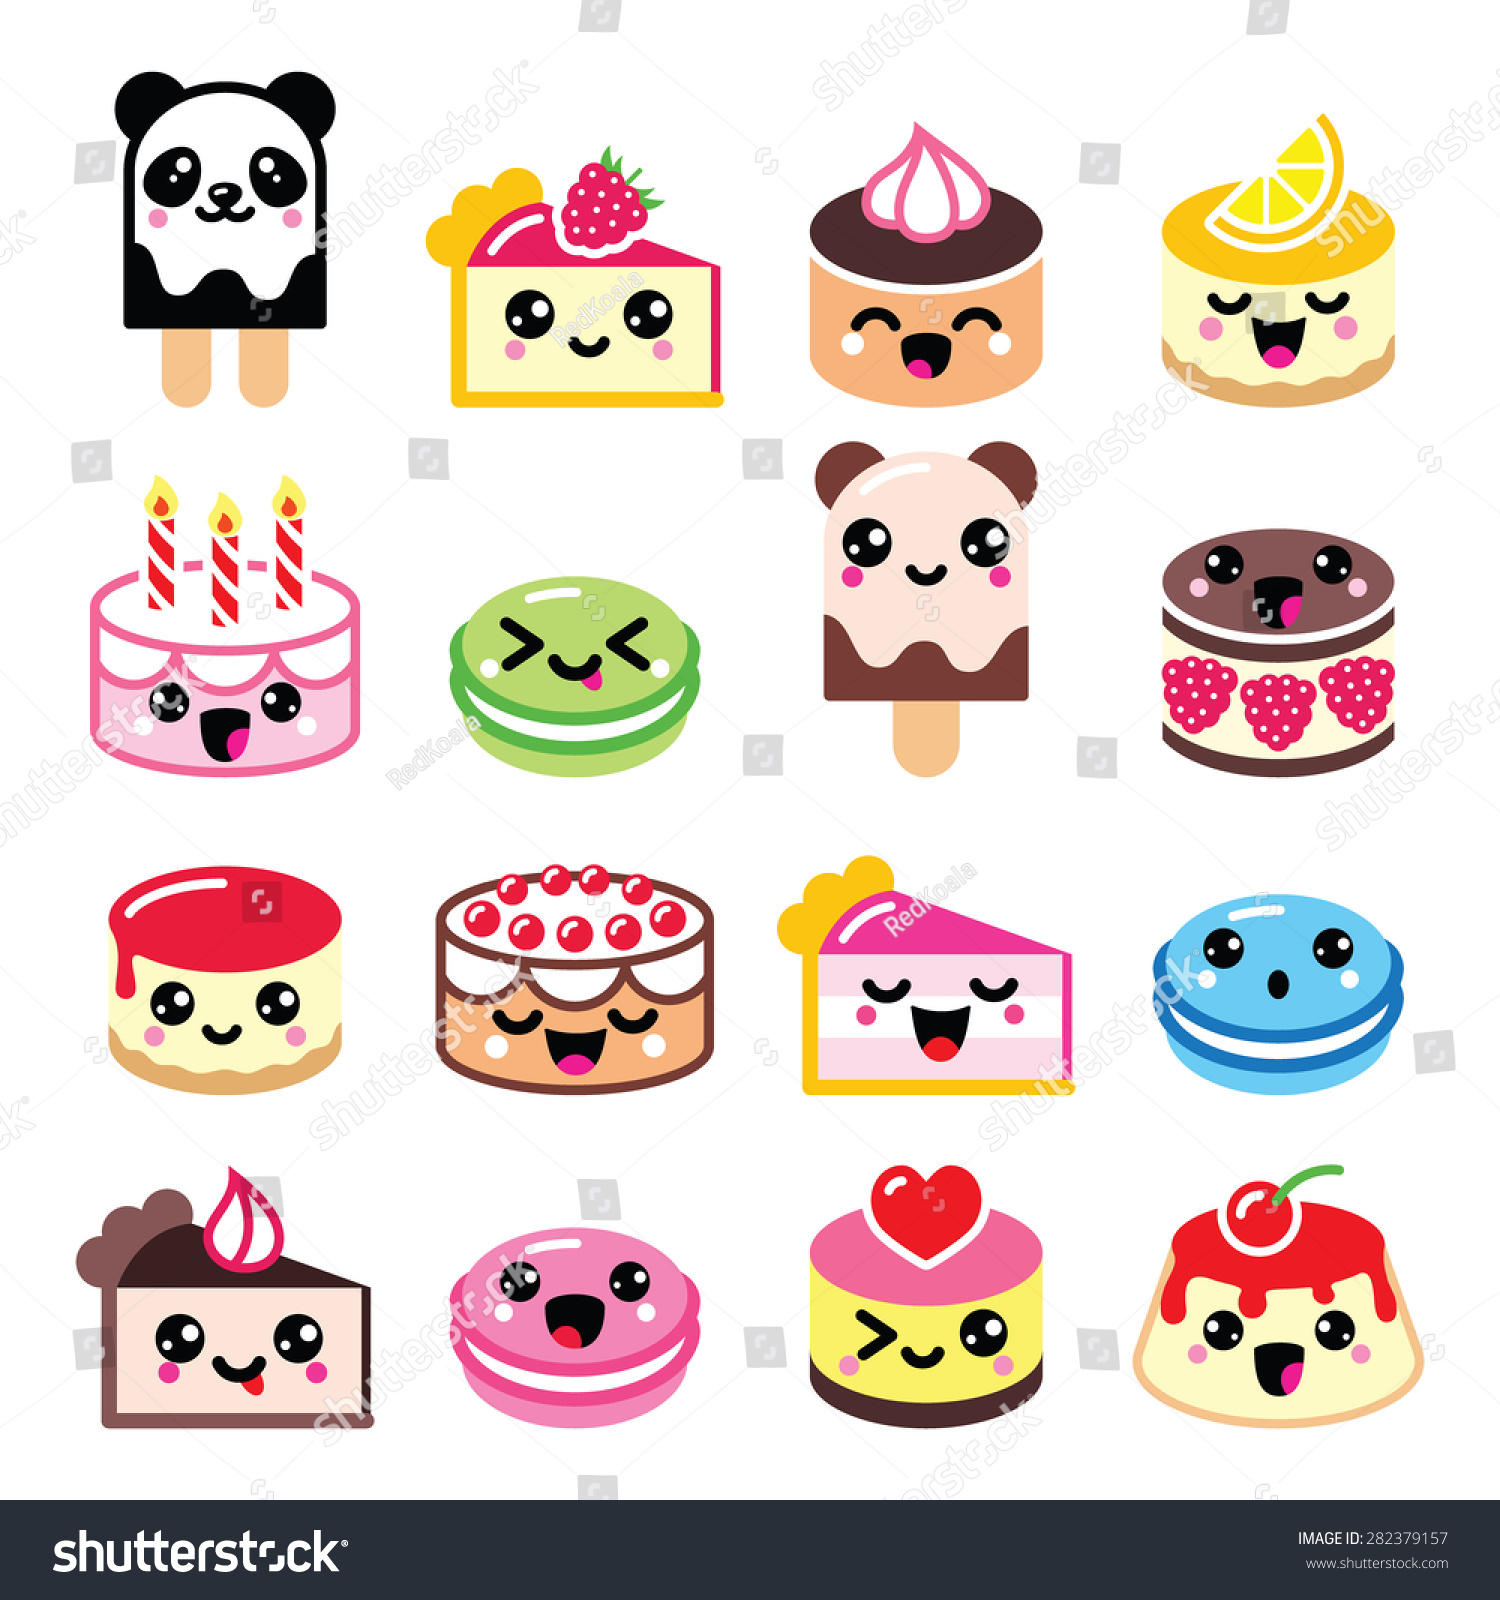 Royalty-free Cute Kawaii dessert - cake, macaroon ...